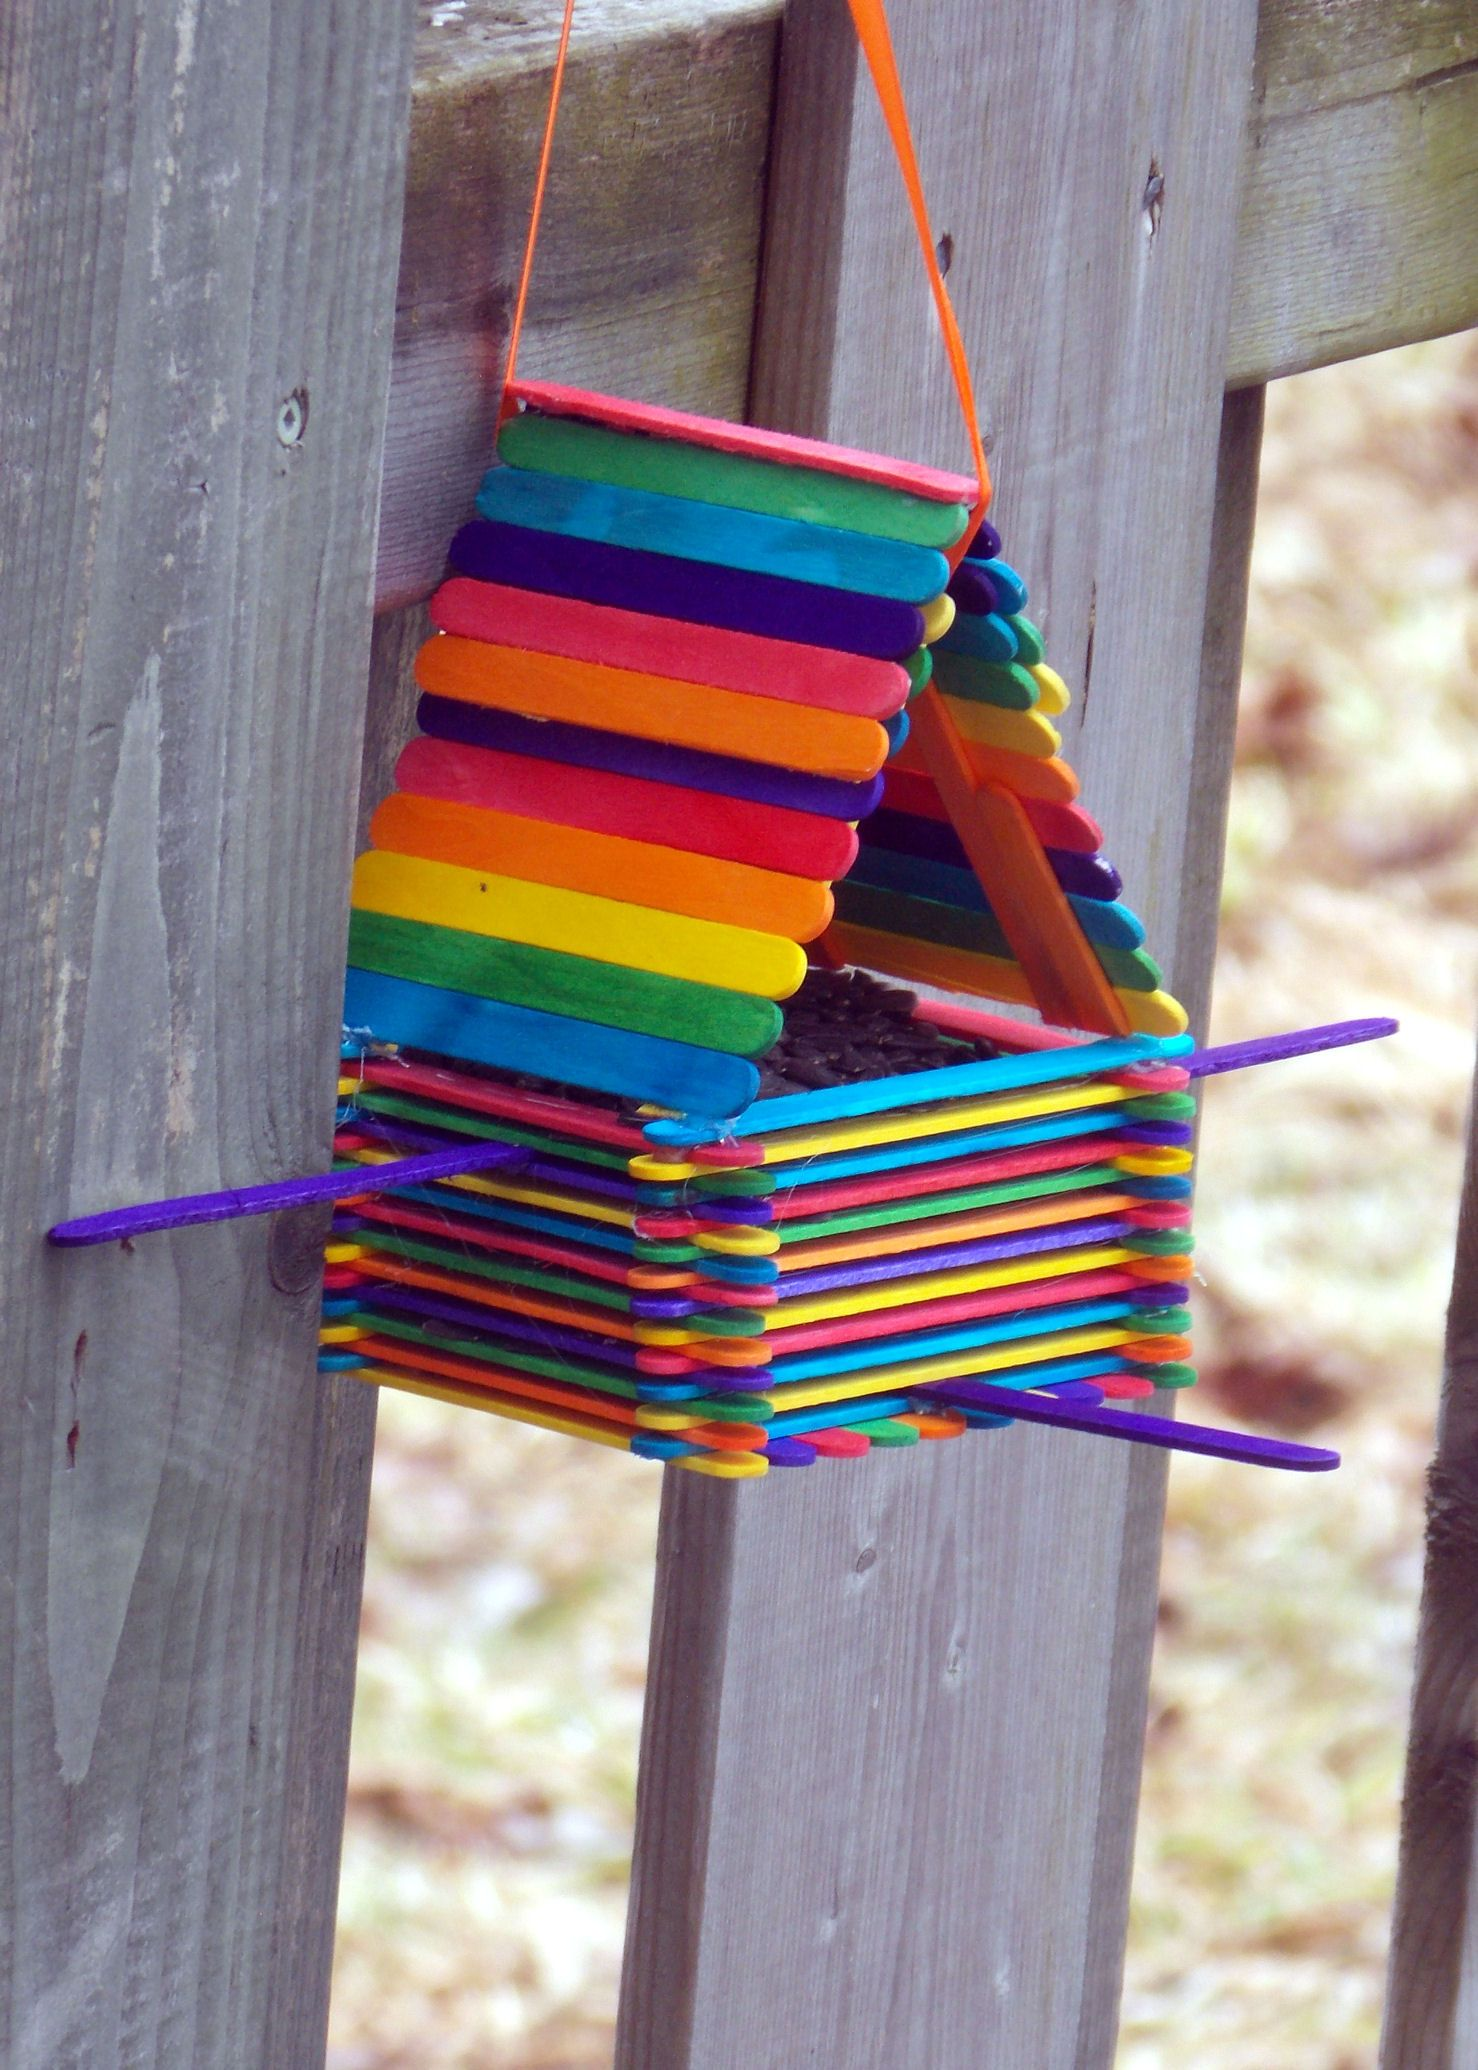 Popsicle Stick Bird House 2 Easy Birdhouse Made Out Of Colored Craft Sticks Ribbon Cost About To Make